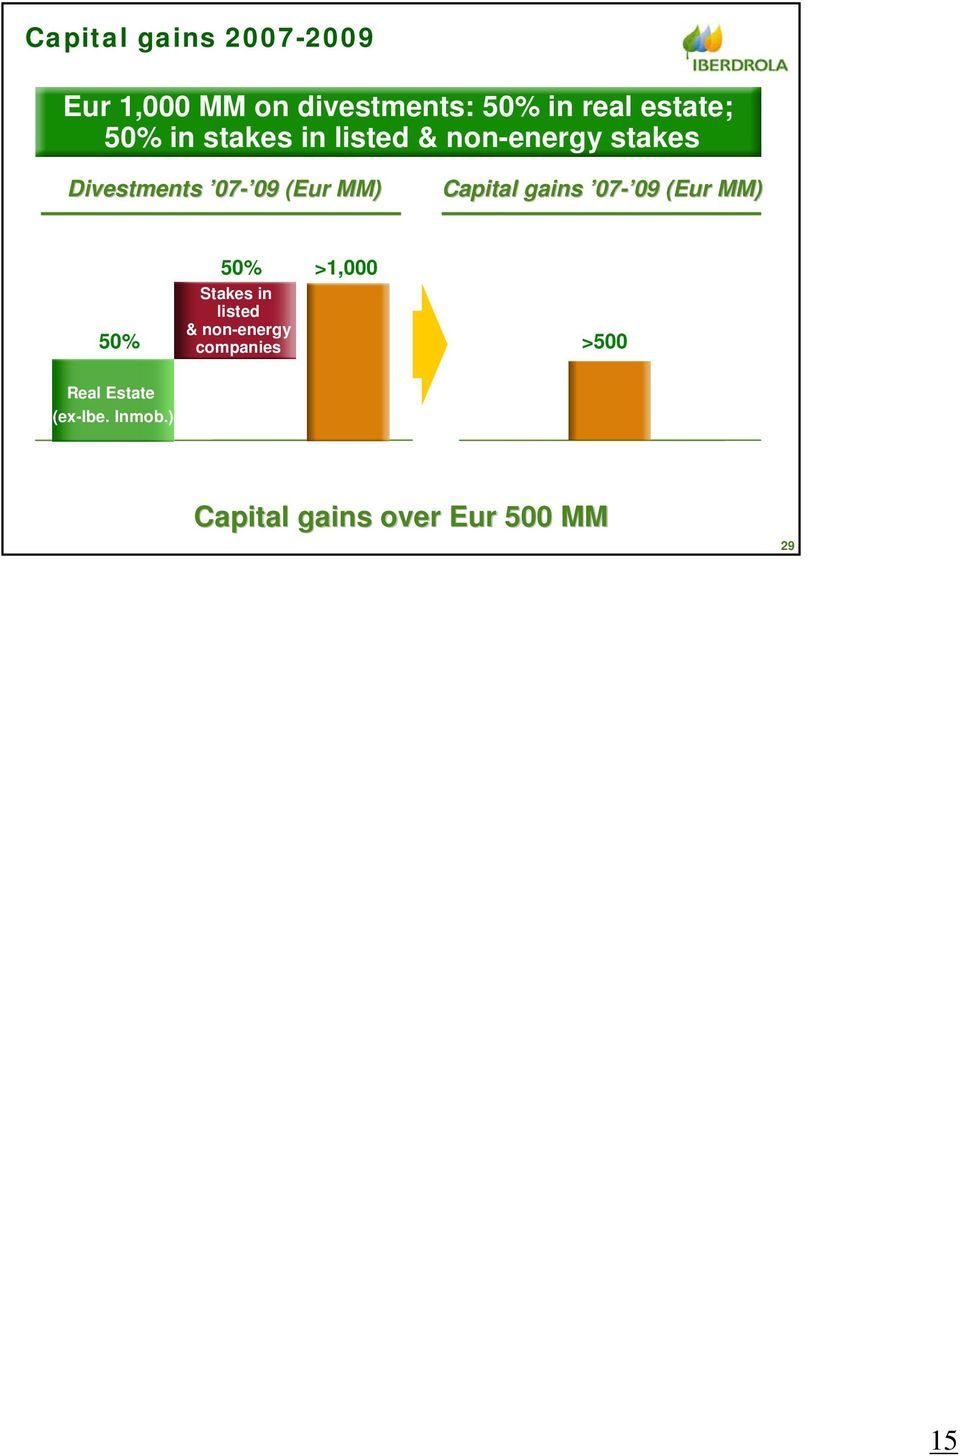 Capital gains 07-0909 (Eur( MM) 50% 50% >1,000 Stakes in listed &